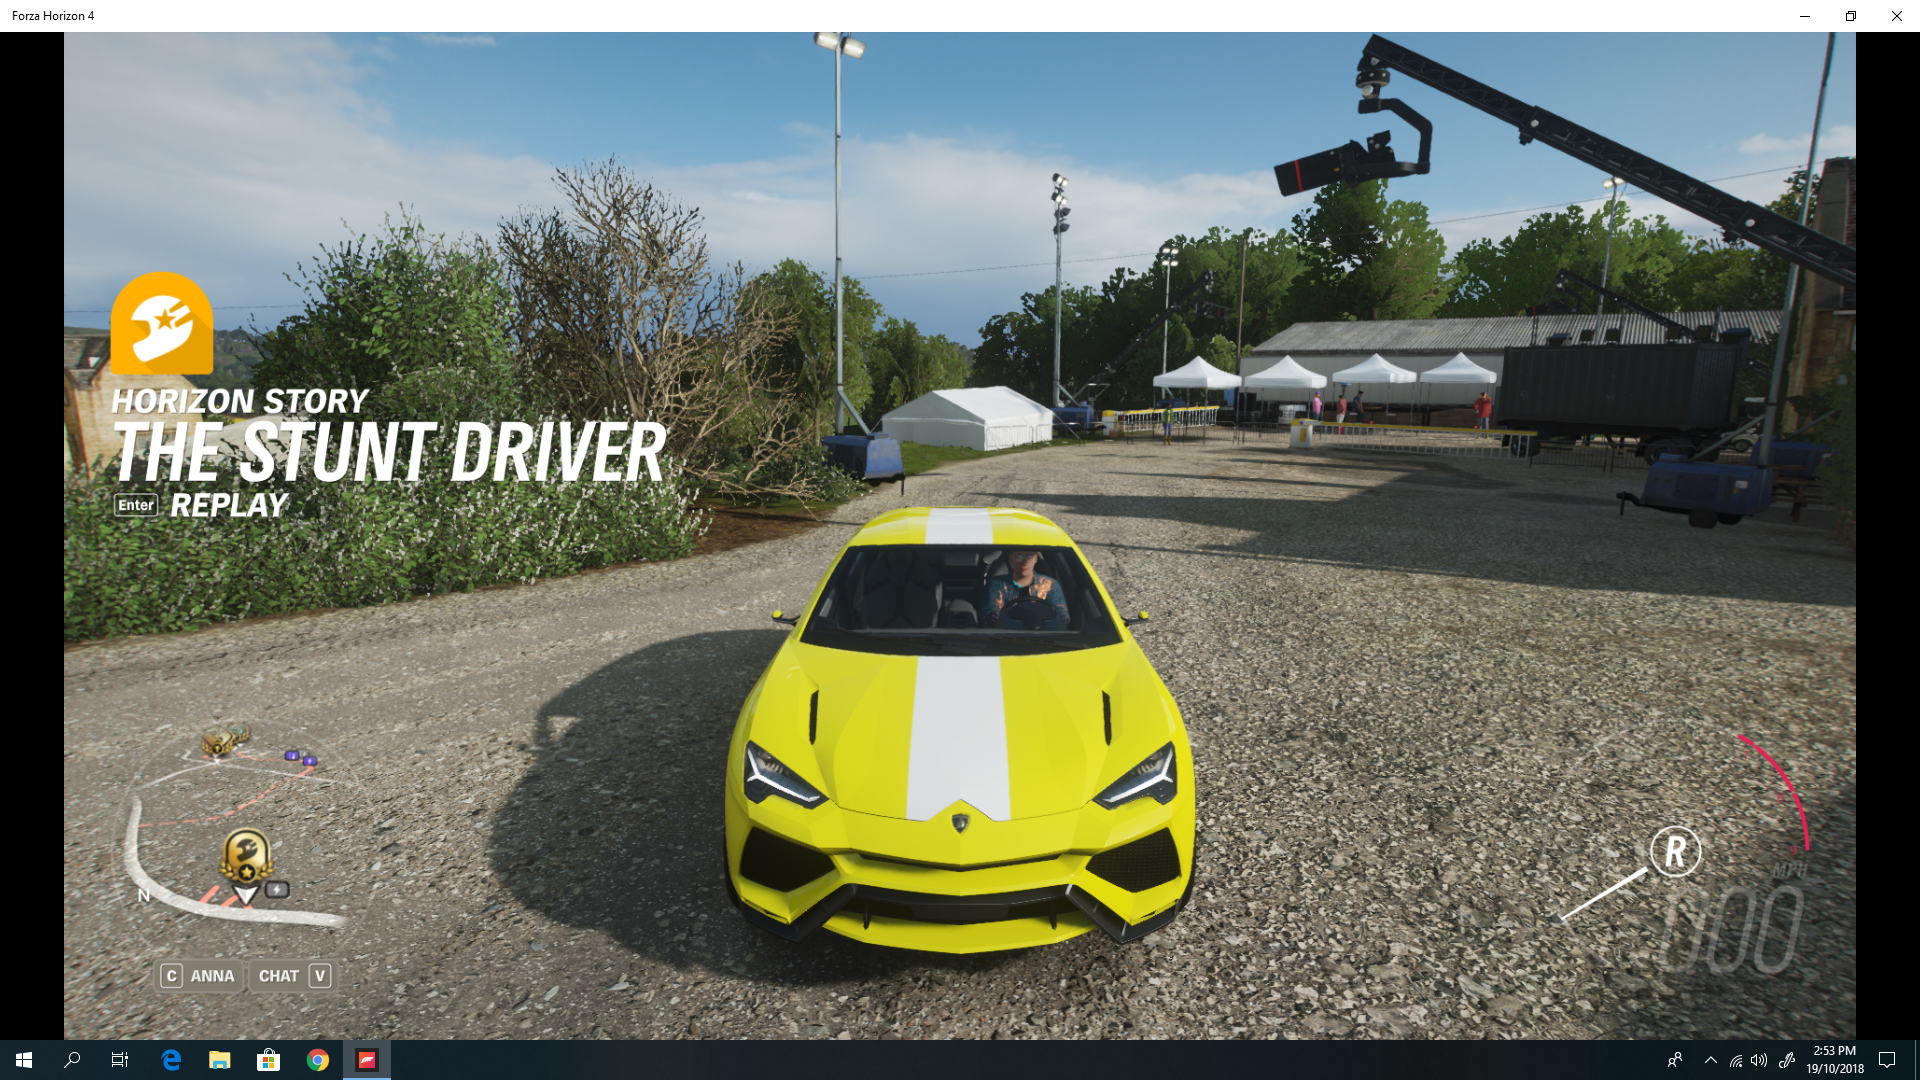 Forza Horizon 4: Stunt Driver Story (Requirements For Stars)